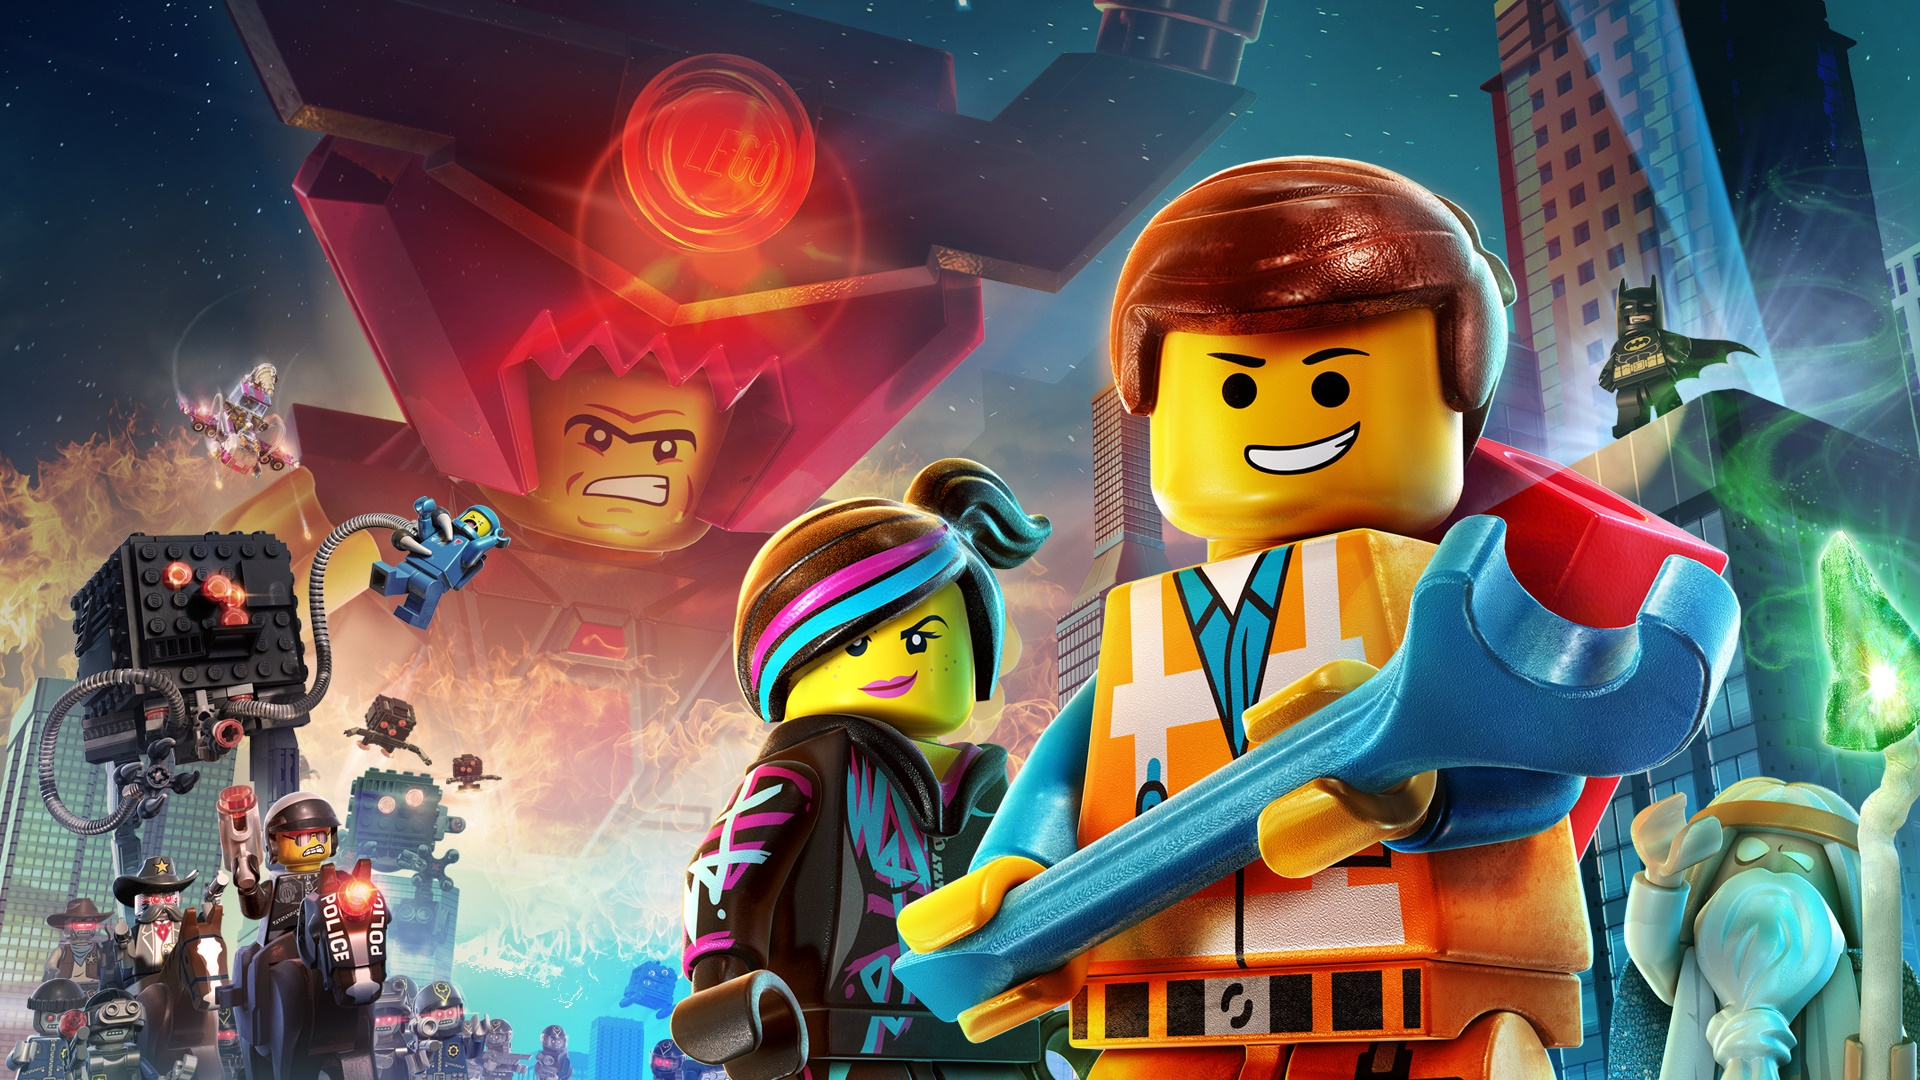 5 Lessons to Learn from The LEGO Movie